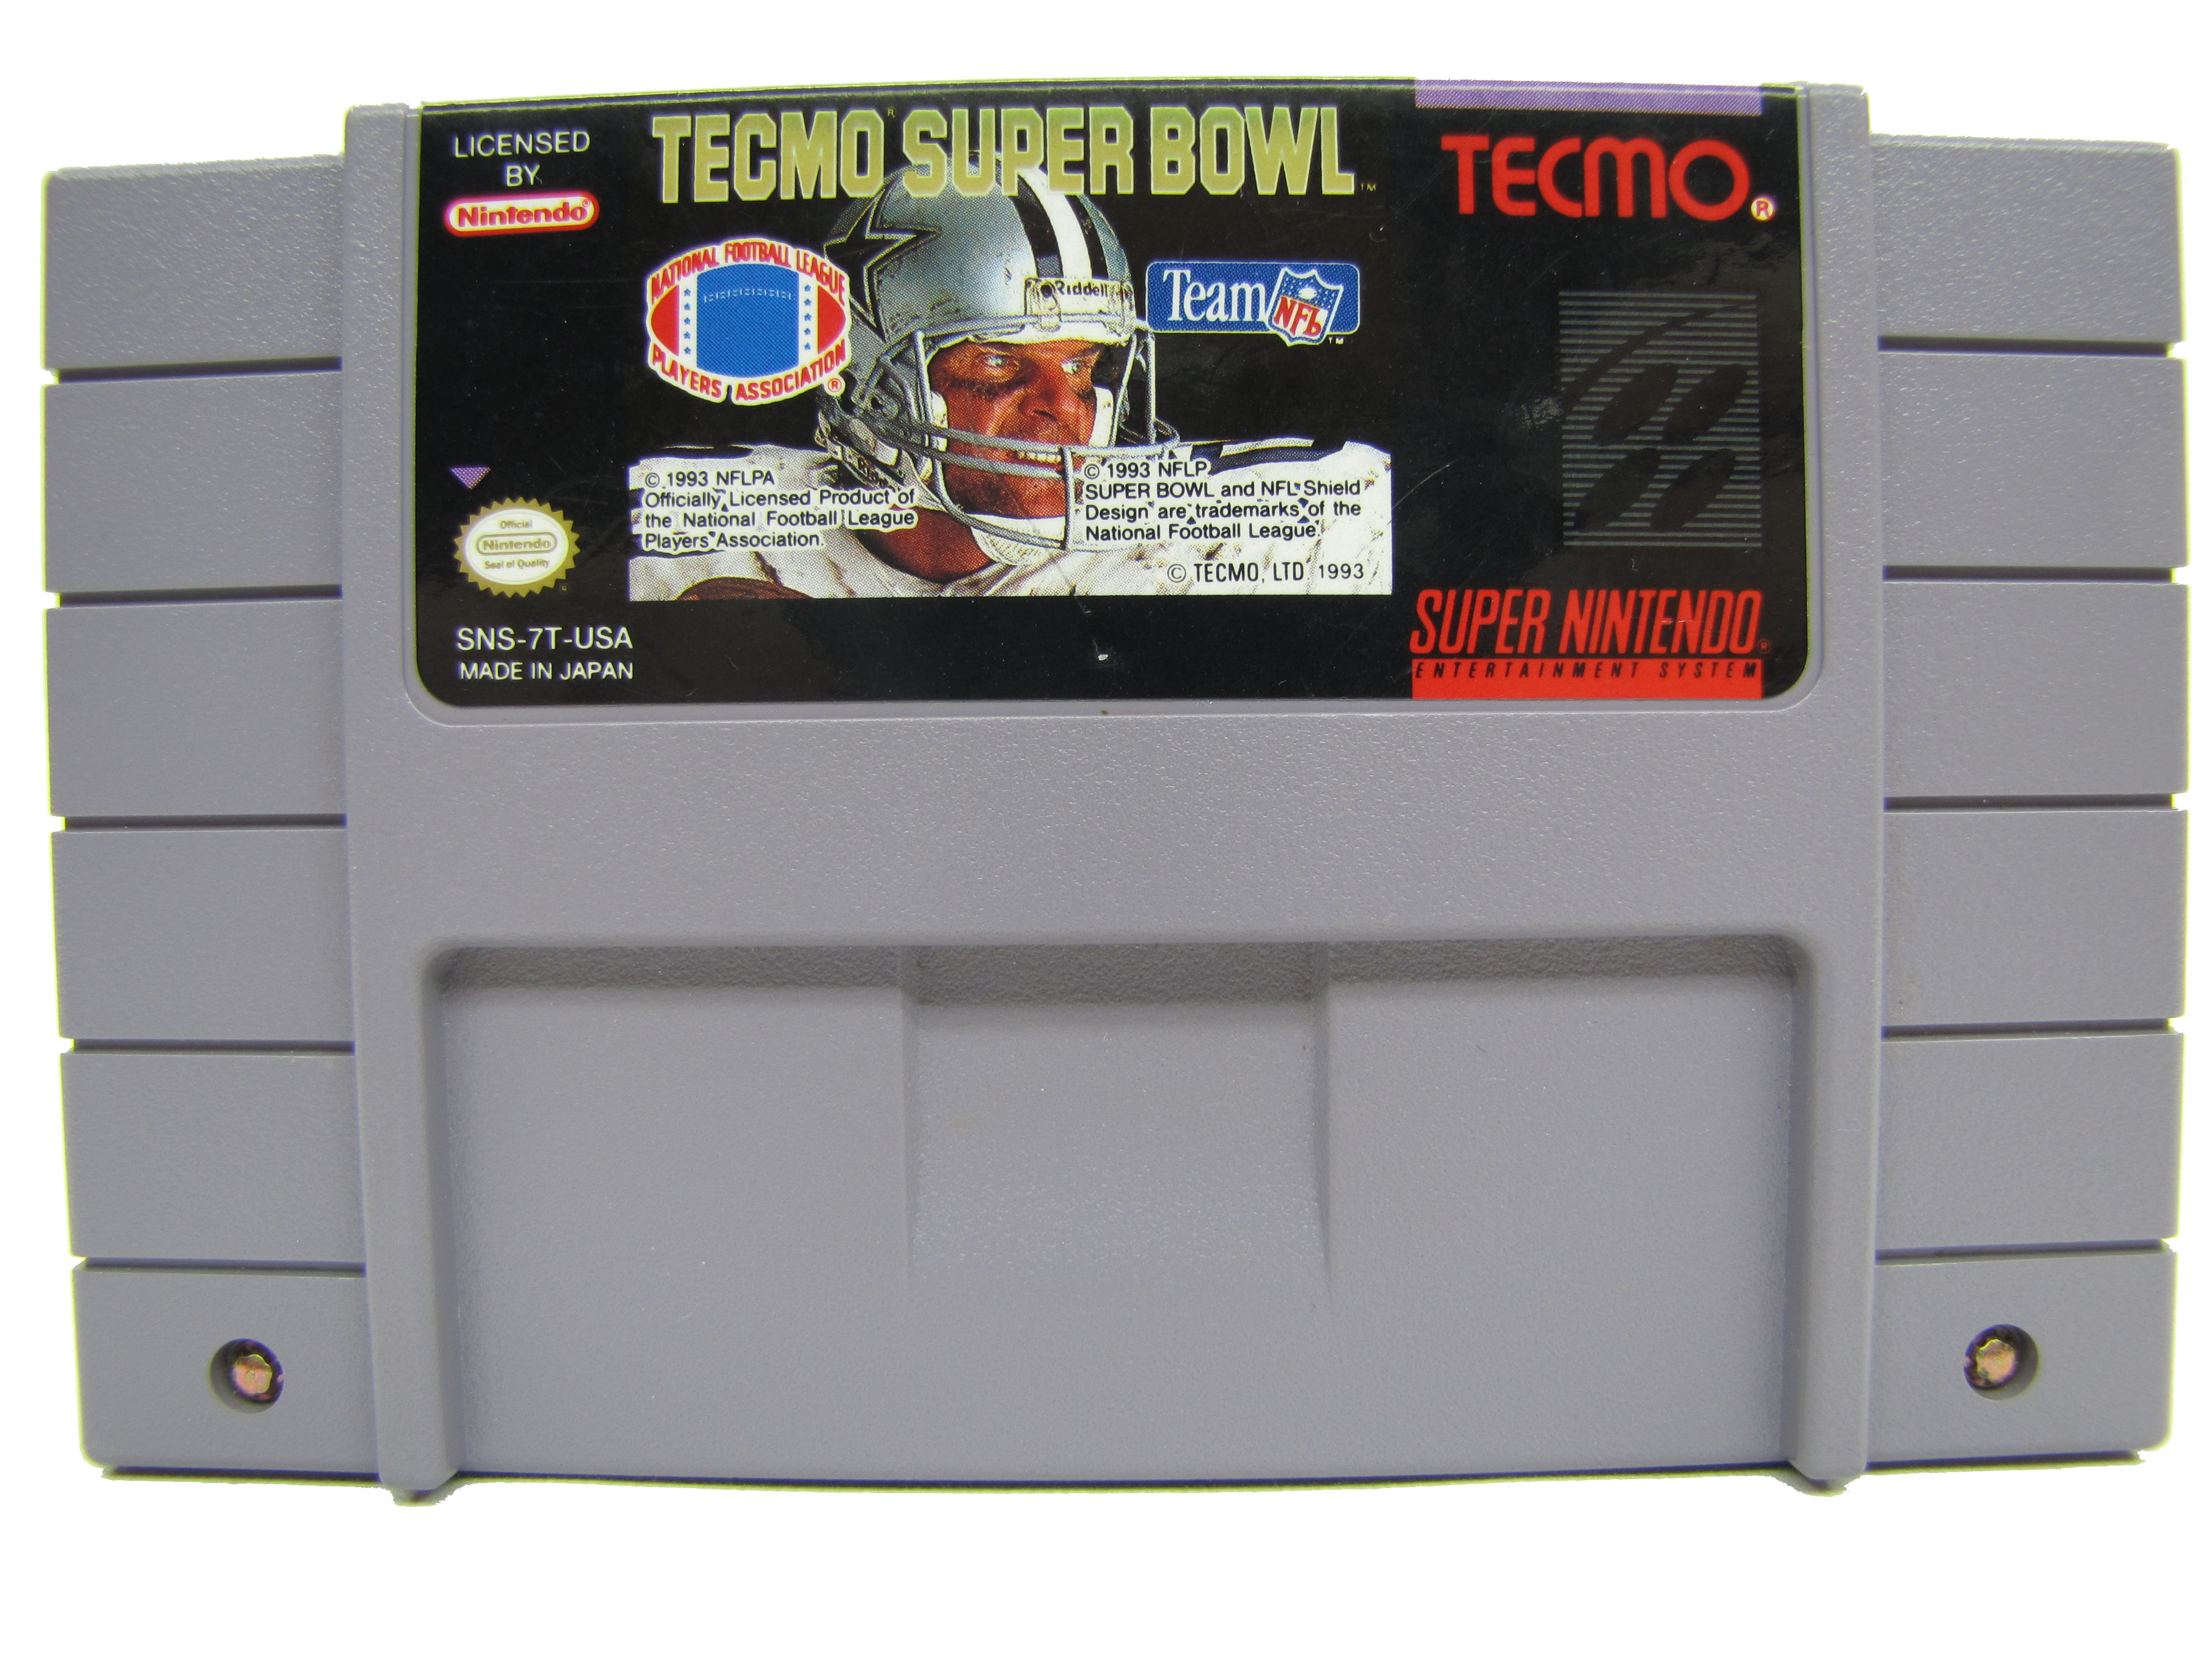 SNES Tecmo Super Bowl - 1993